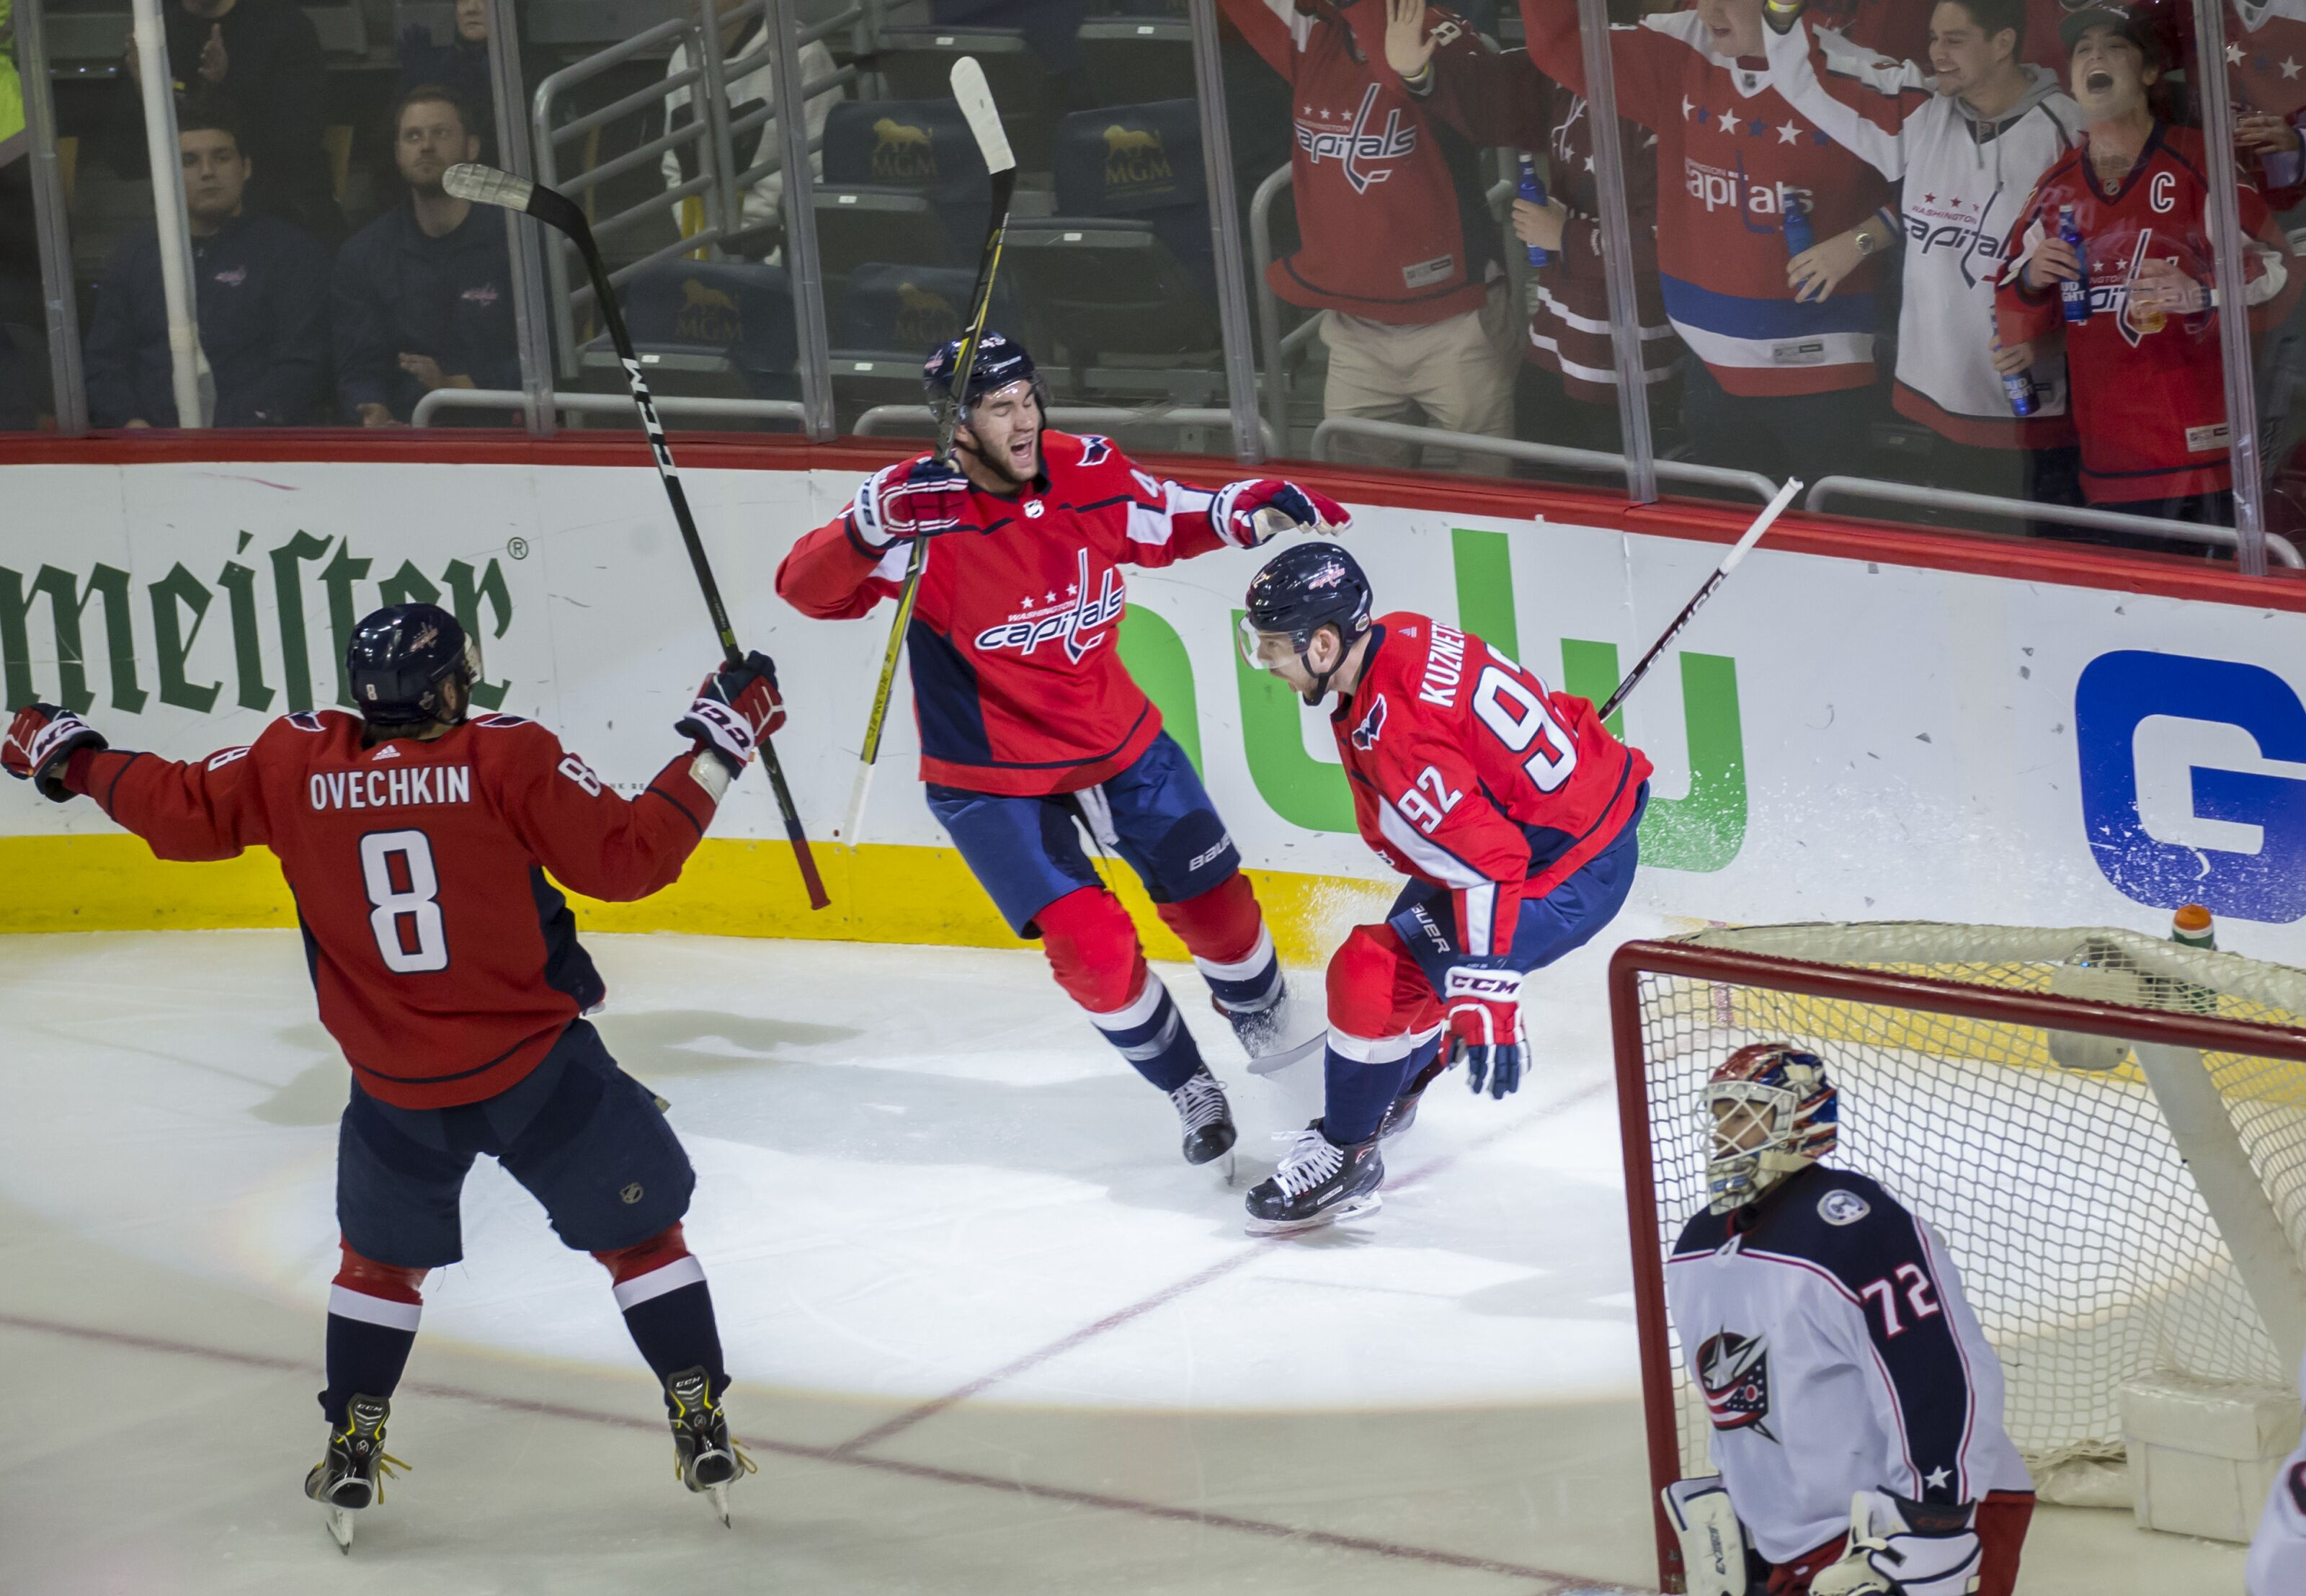 949907232-nhl-apr-21-stanley-cup-playoffs-first-round-game-5-blue-jackets-at-capitals.jpg